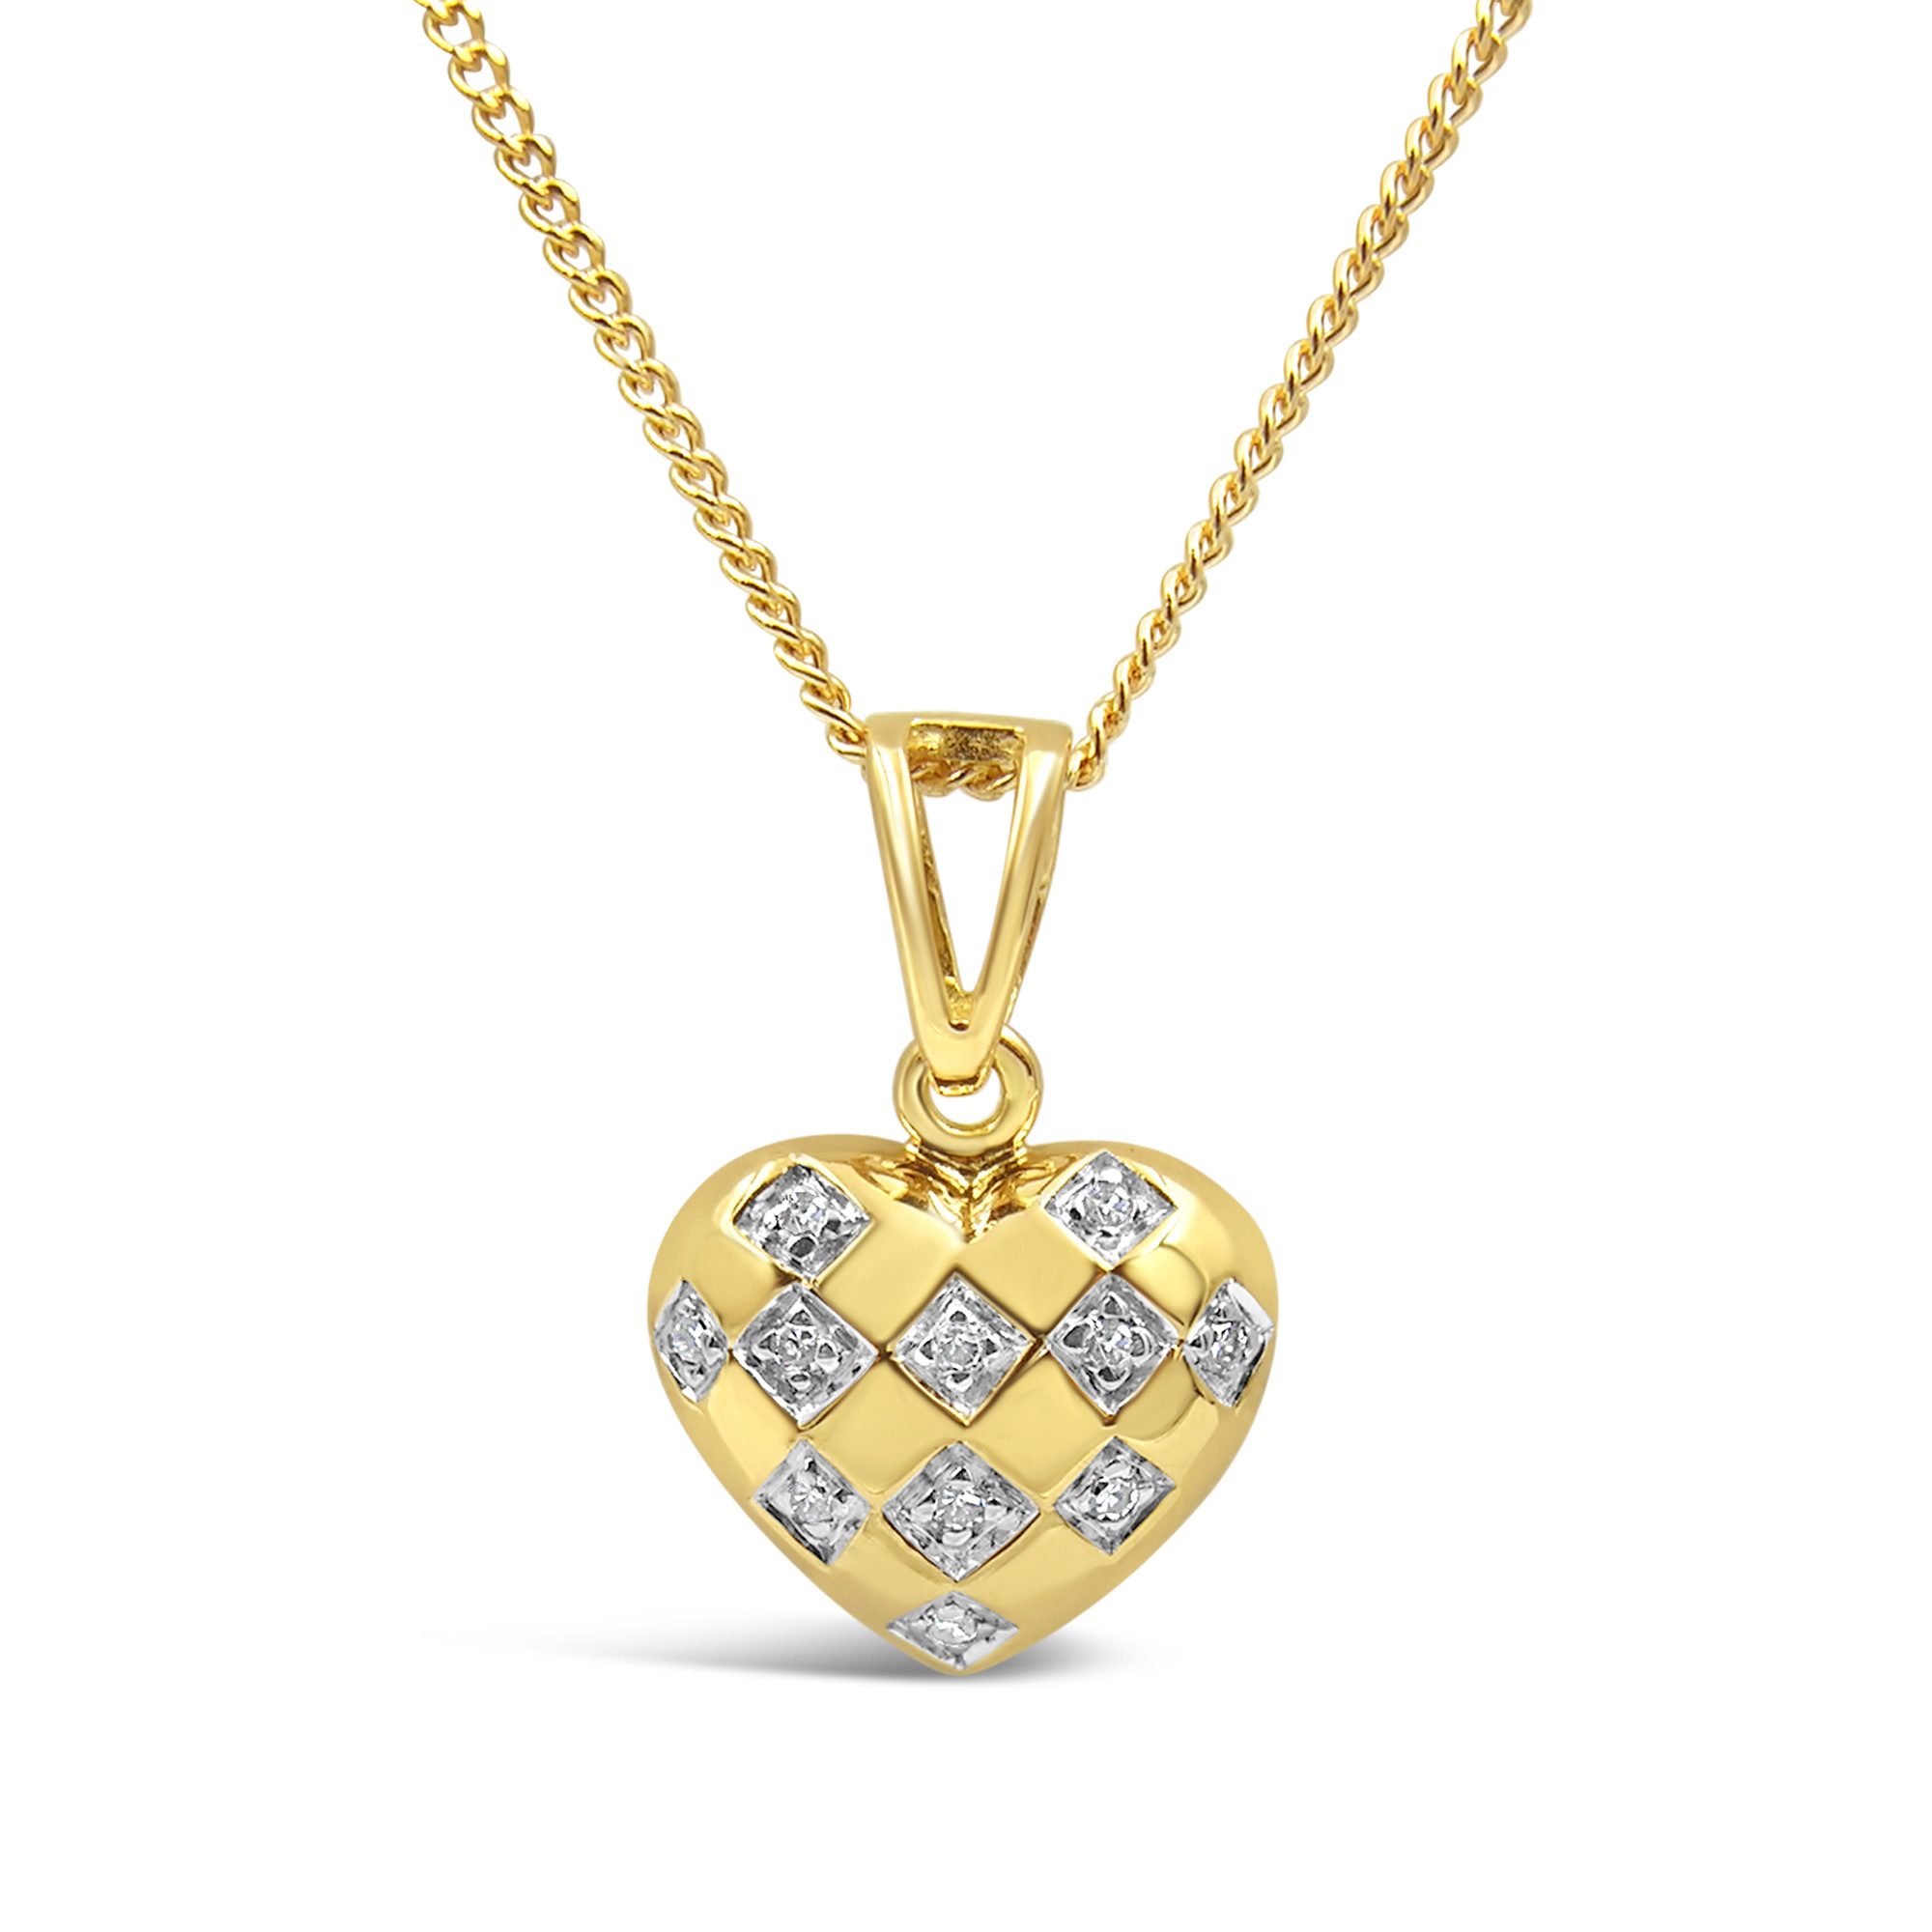 18kt yellow gold heart pendant with 0.10 ct diamonds